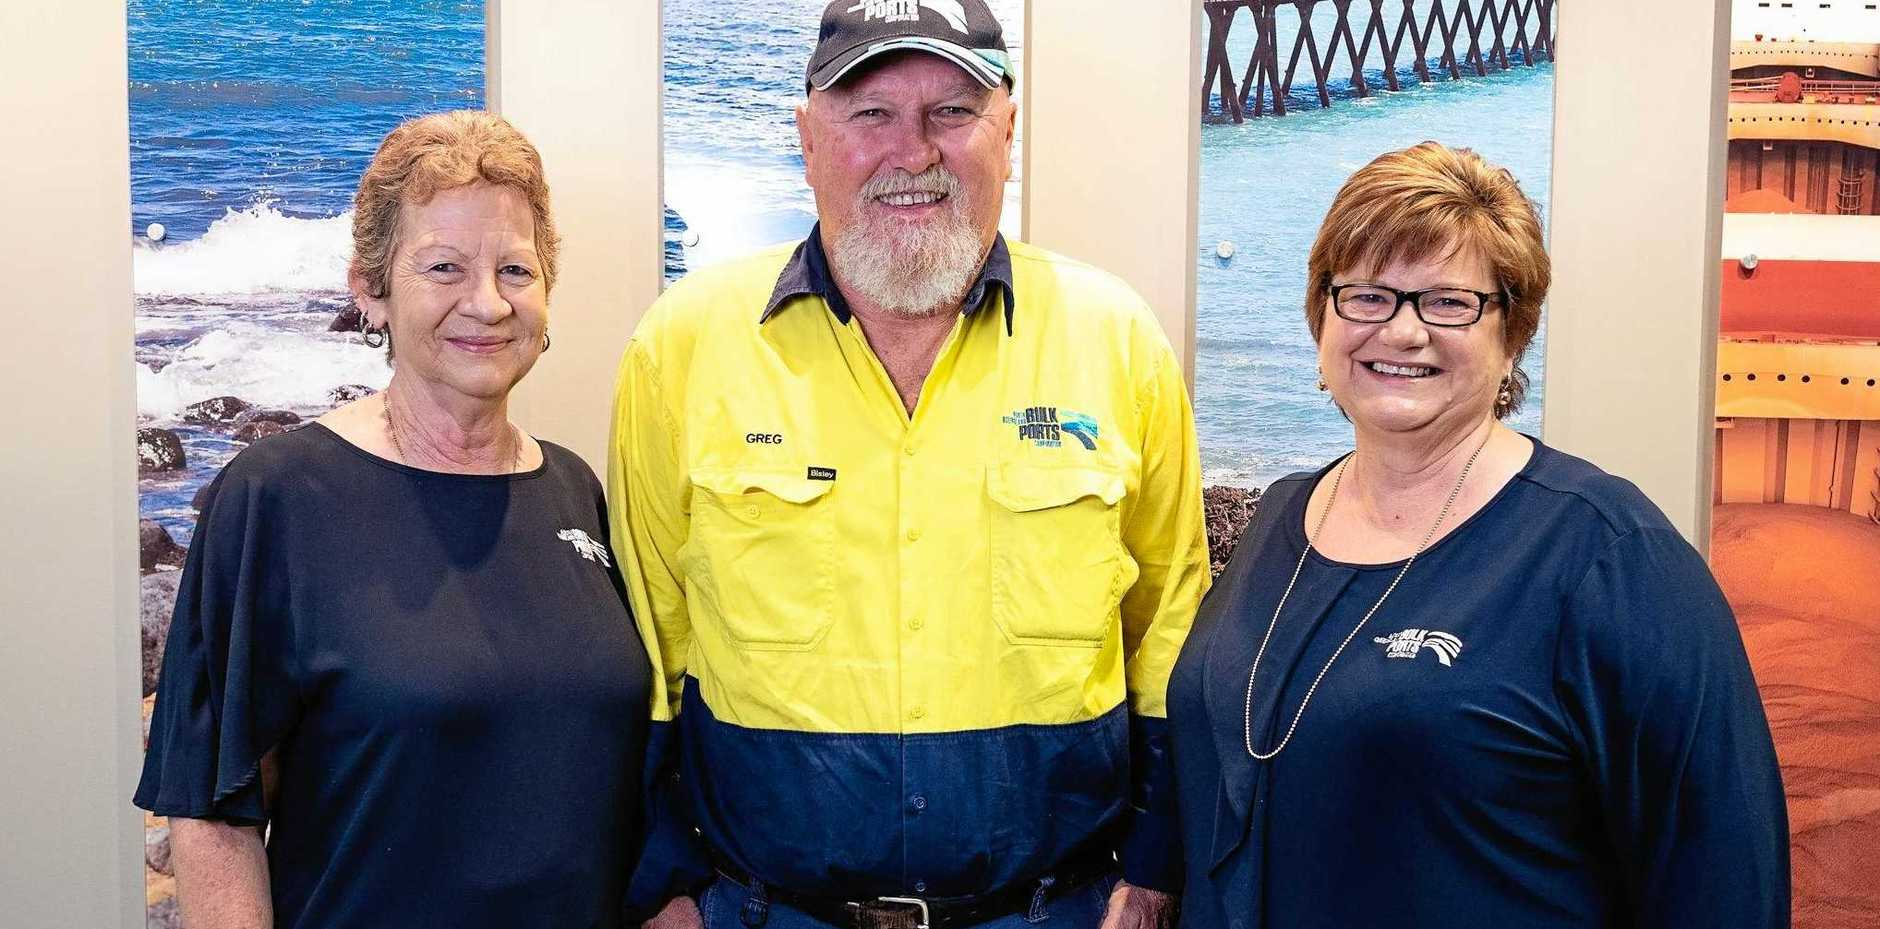 DEVOTED: Bronnie Kapitzke, Greg Steward and Debbie McDonald have given a collective 118 years of service to North Queensland Bulk Ports Corporation.